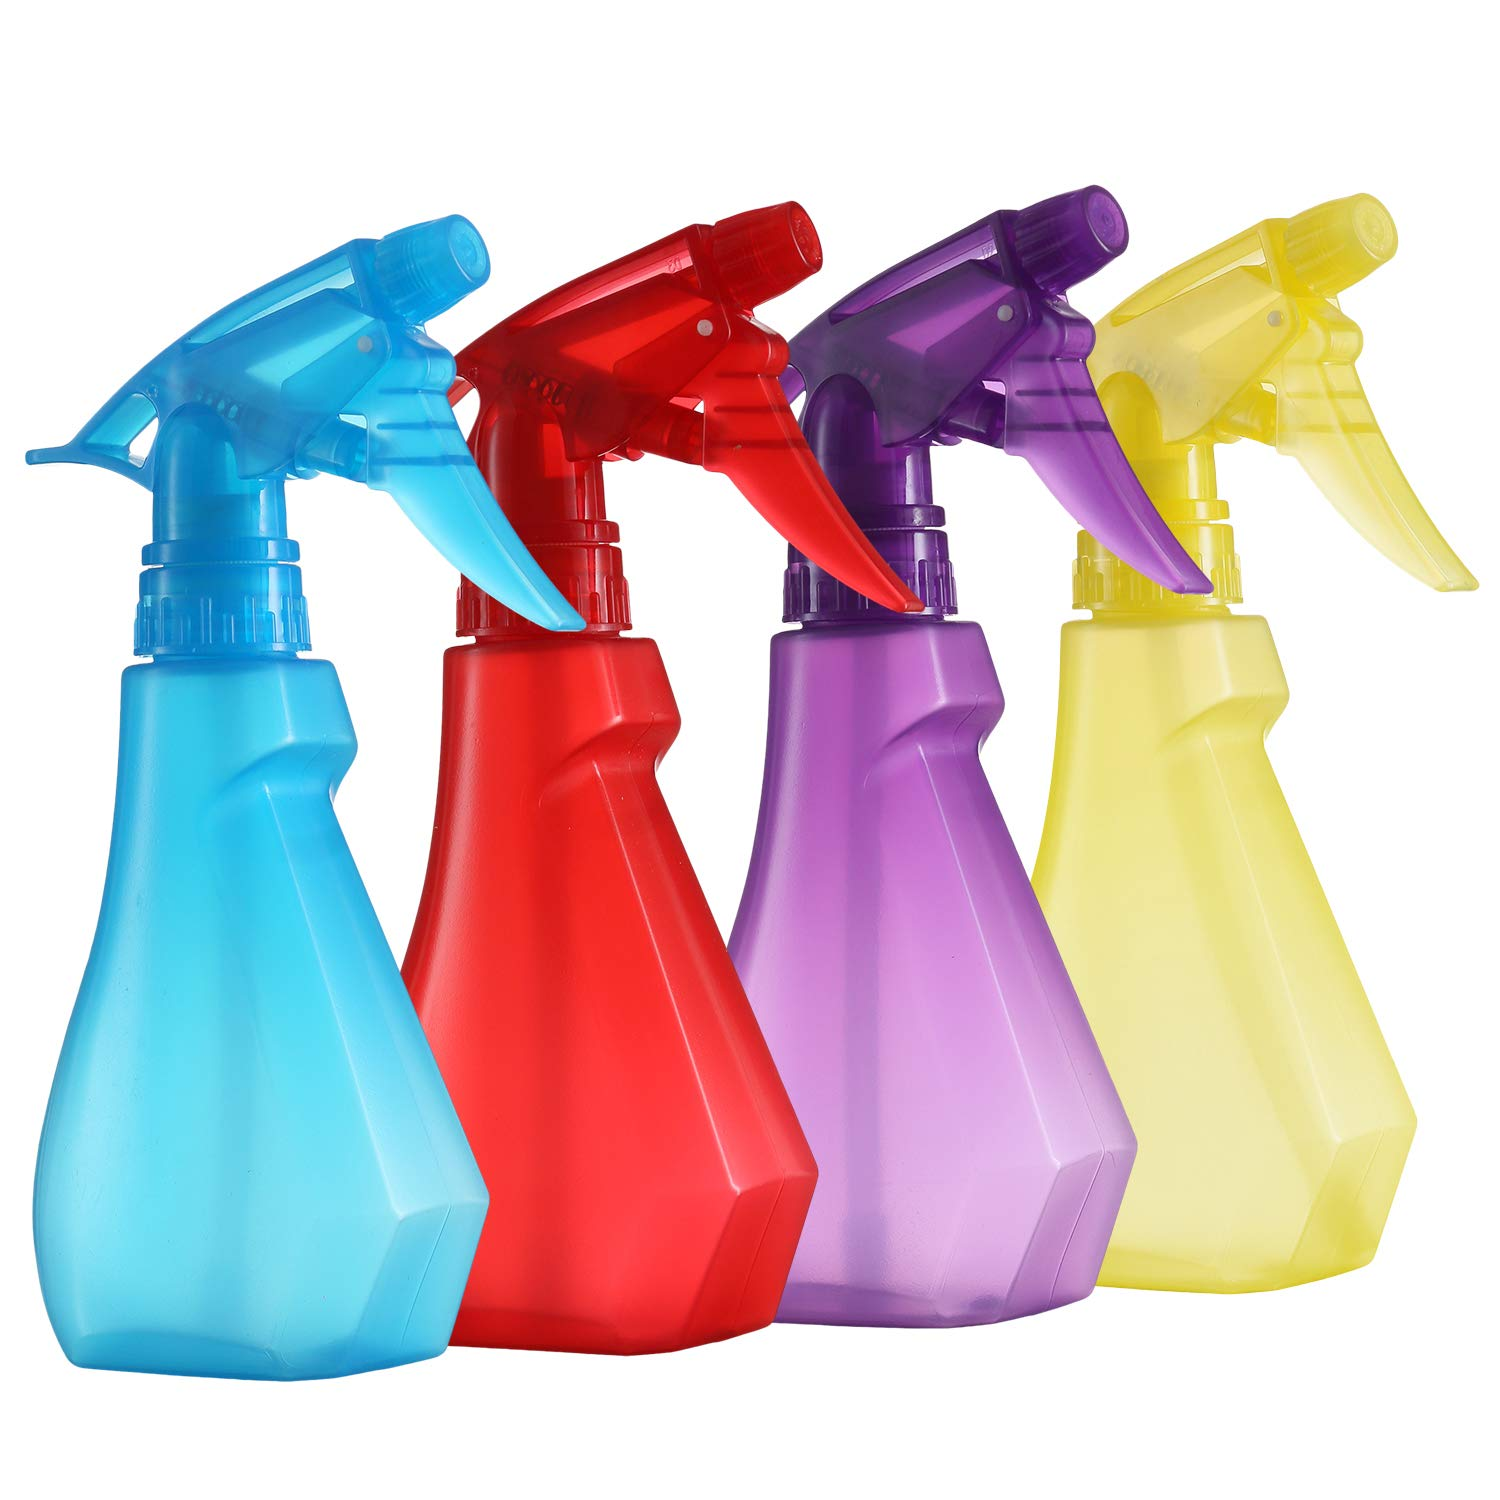 Pack of 4-8 Oz Empty Plastic Spray Bottles - Attractive Vibrant Colors - Multi Purpose Use Durable BPA Free Material by DilaBee